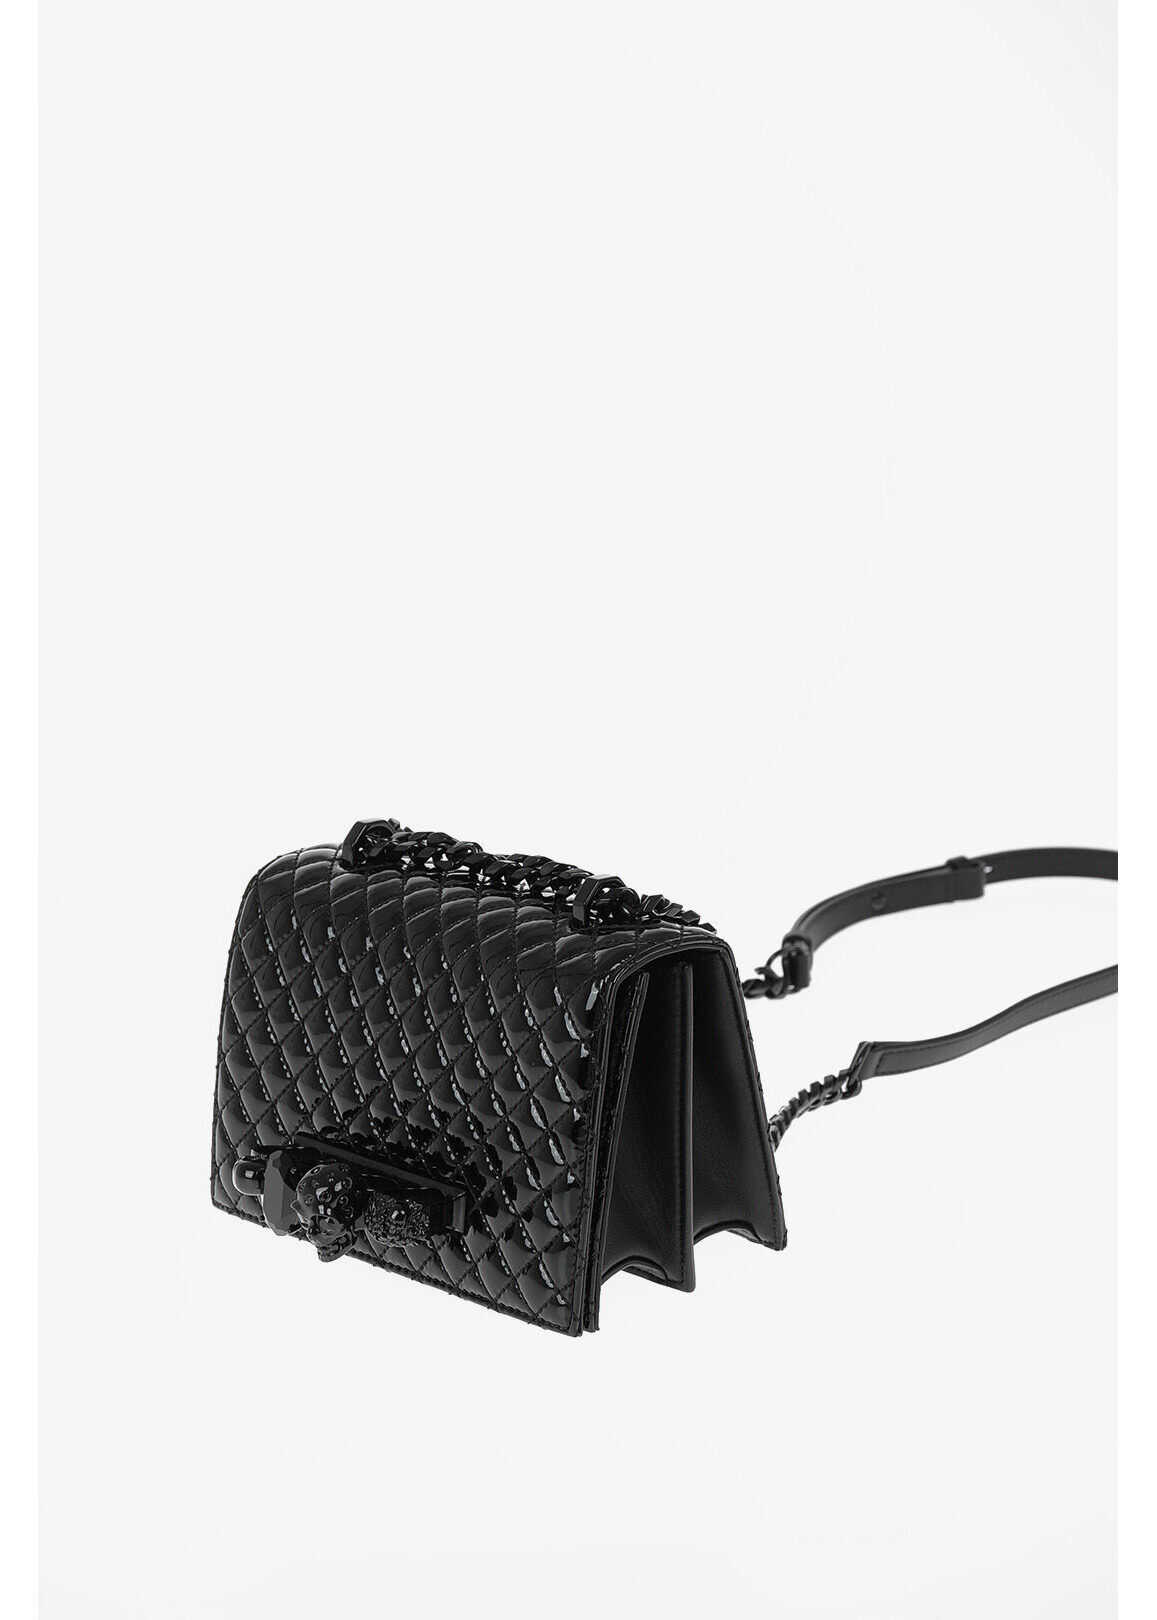 Alexander McQueen Quilted Lacquered Leather FOUR RING Shoulder Bag BLACK imagine b-mall.ro